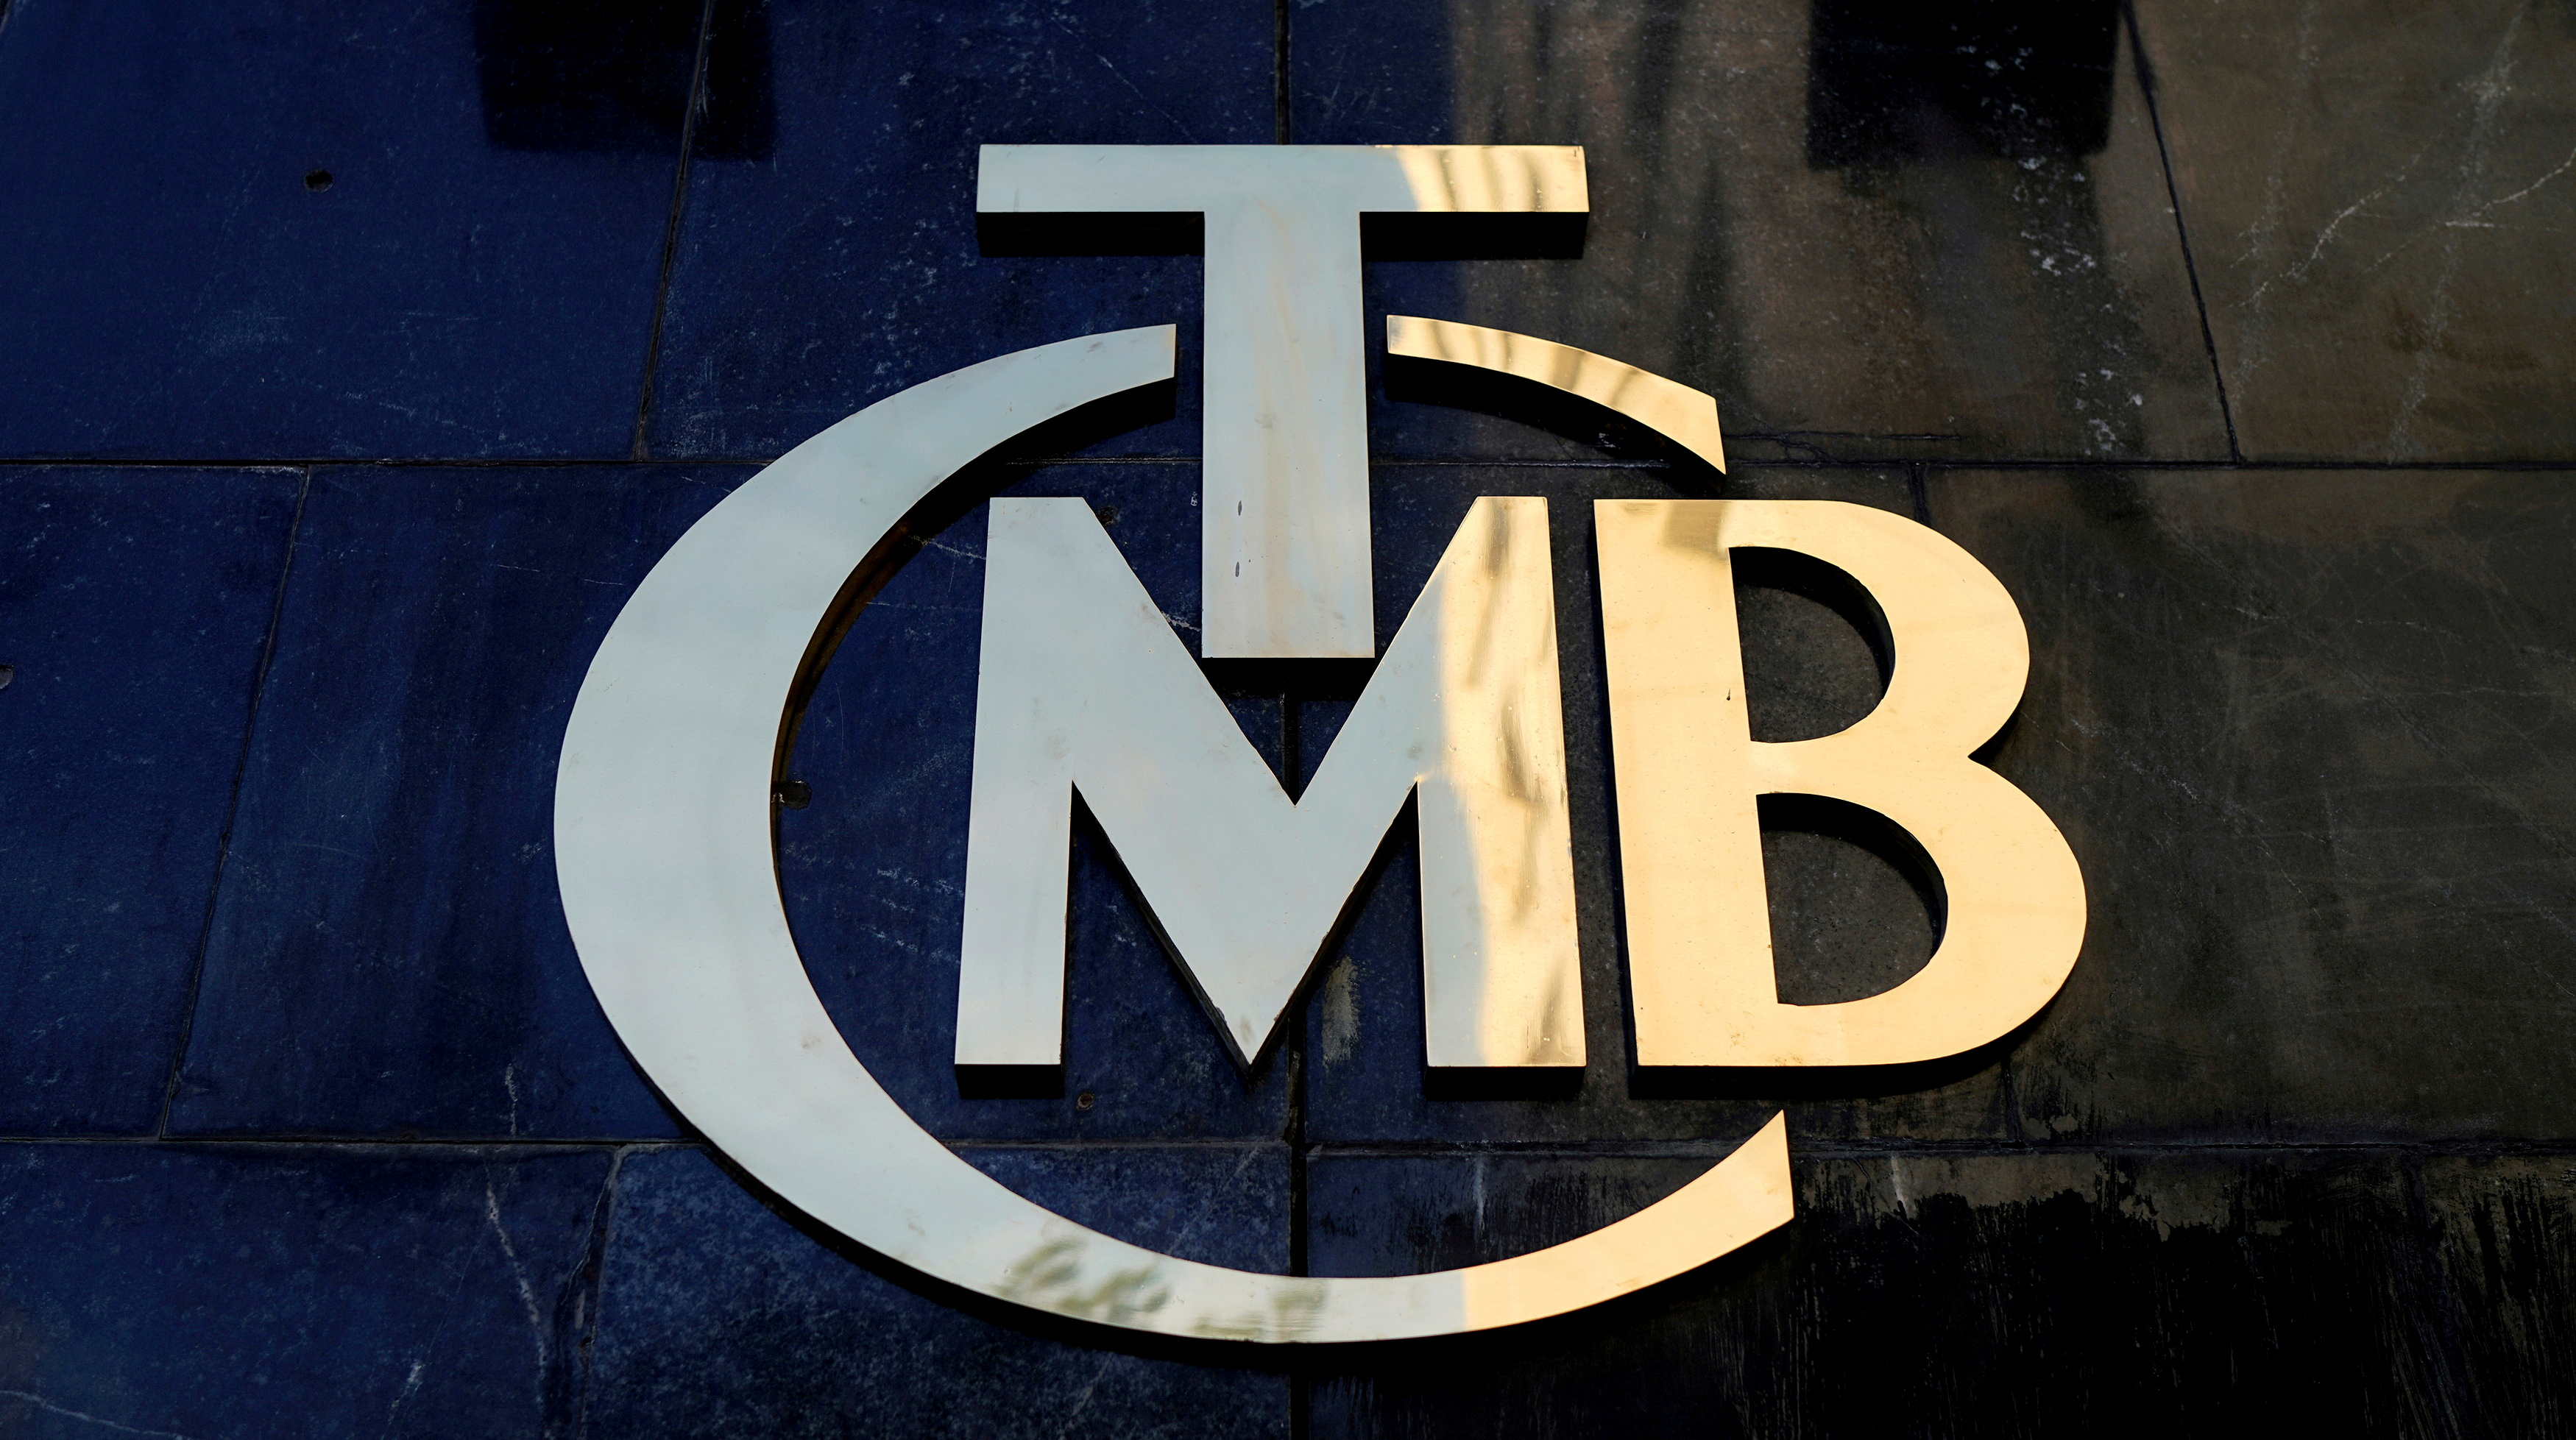 A logo of Turkey's Central Bank (TCMB) is pictured at the entrance of the bank's headquarters in Ankara, Turkey April 19, 2015. REUTERS/Umit Bektas///File Photo